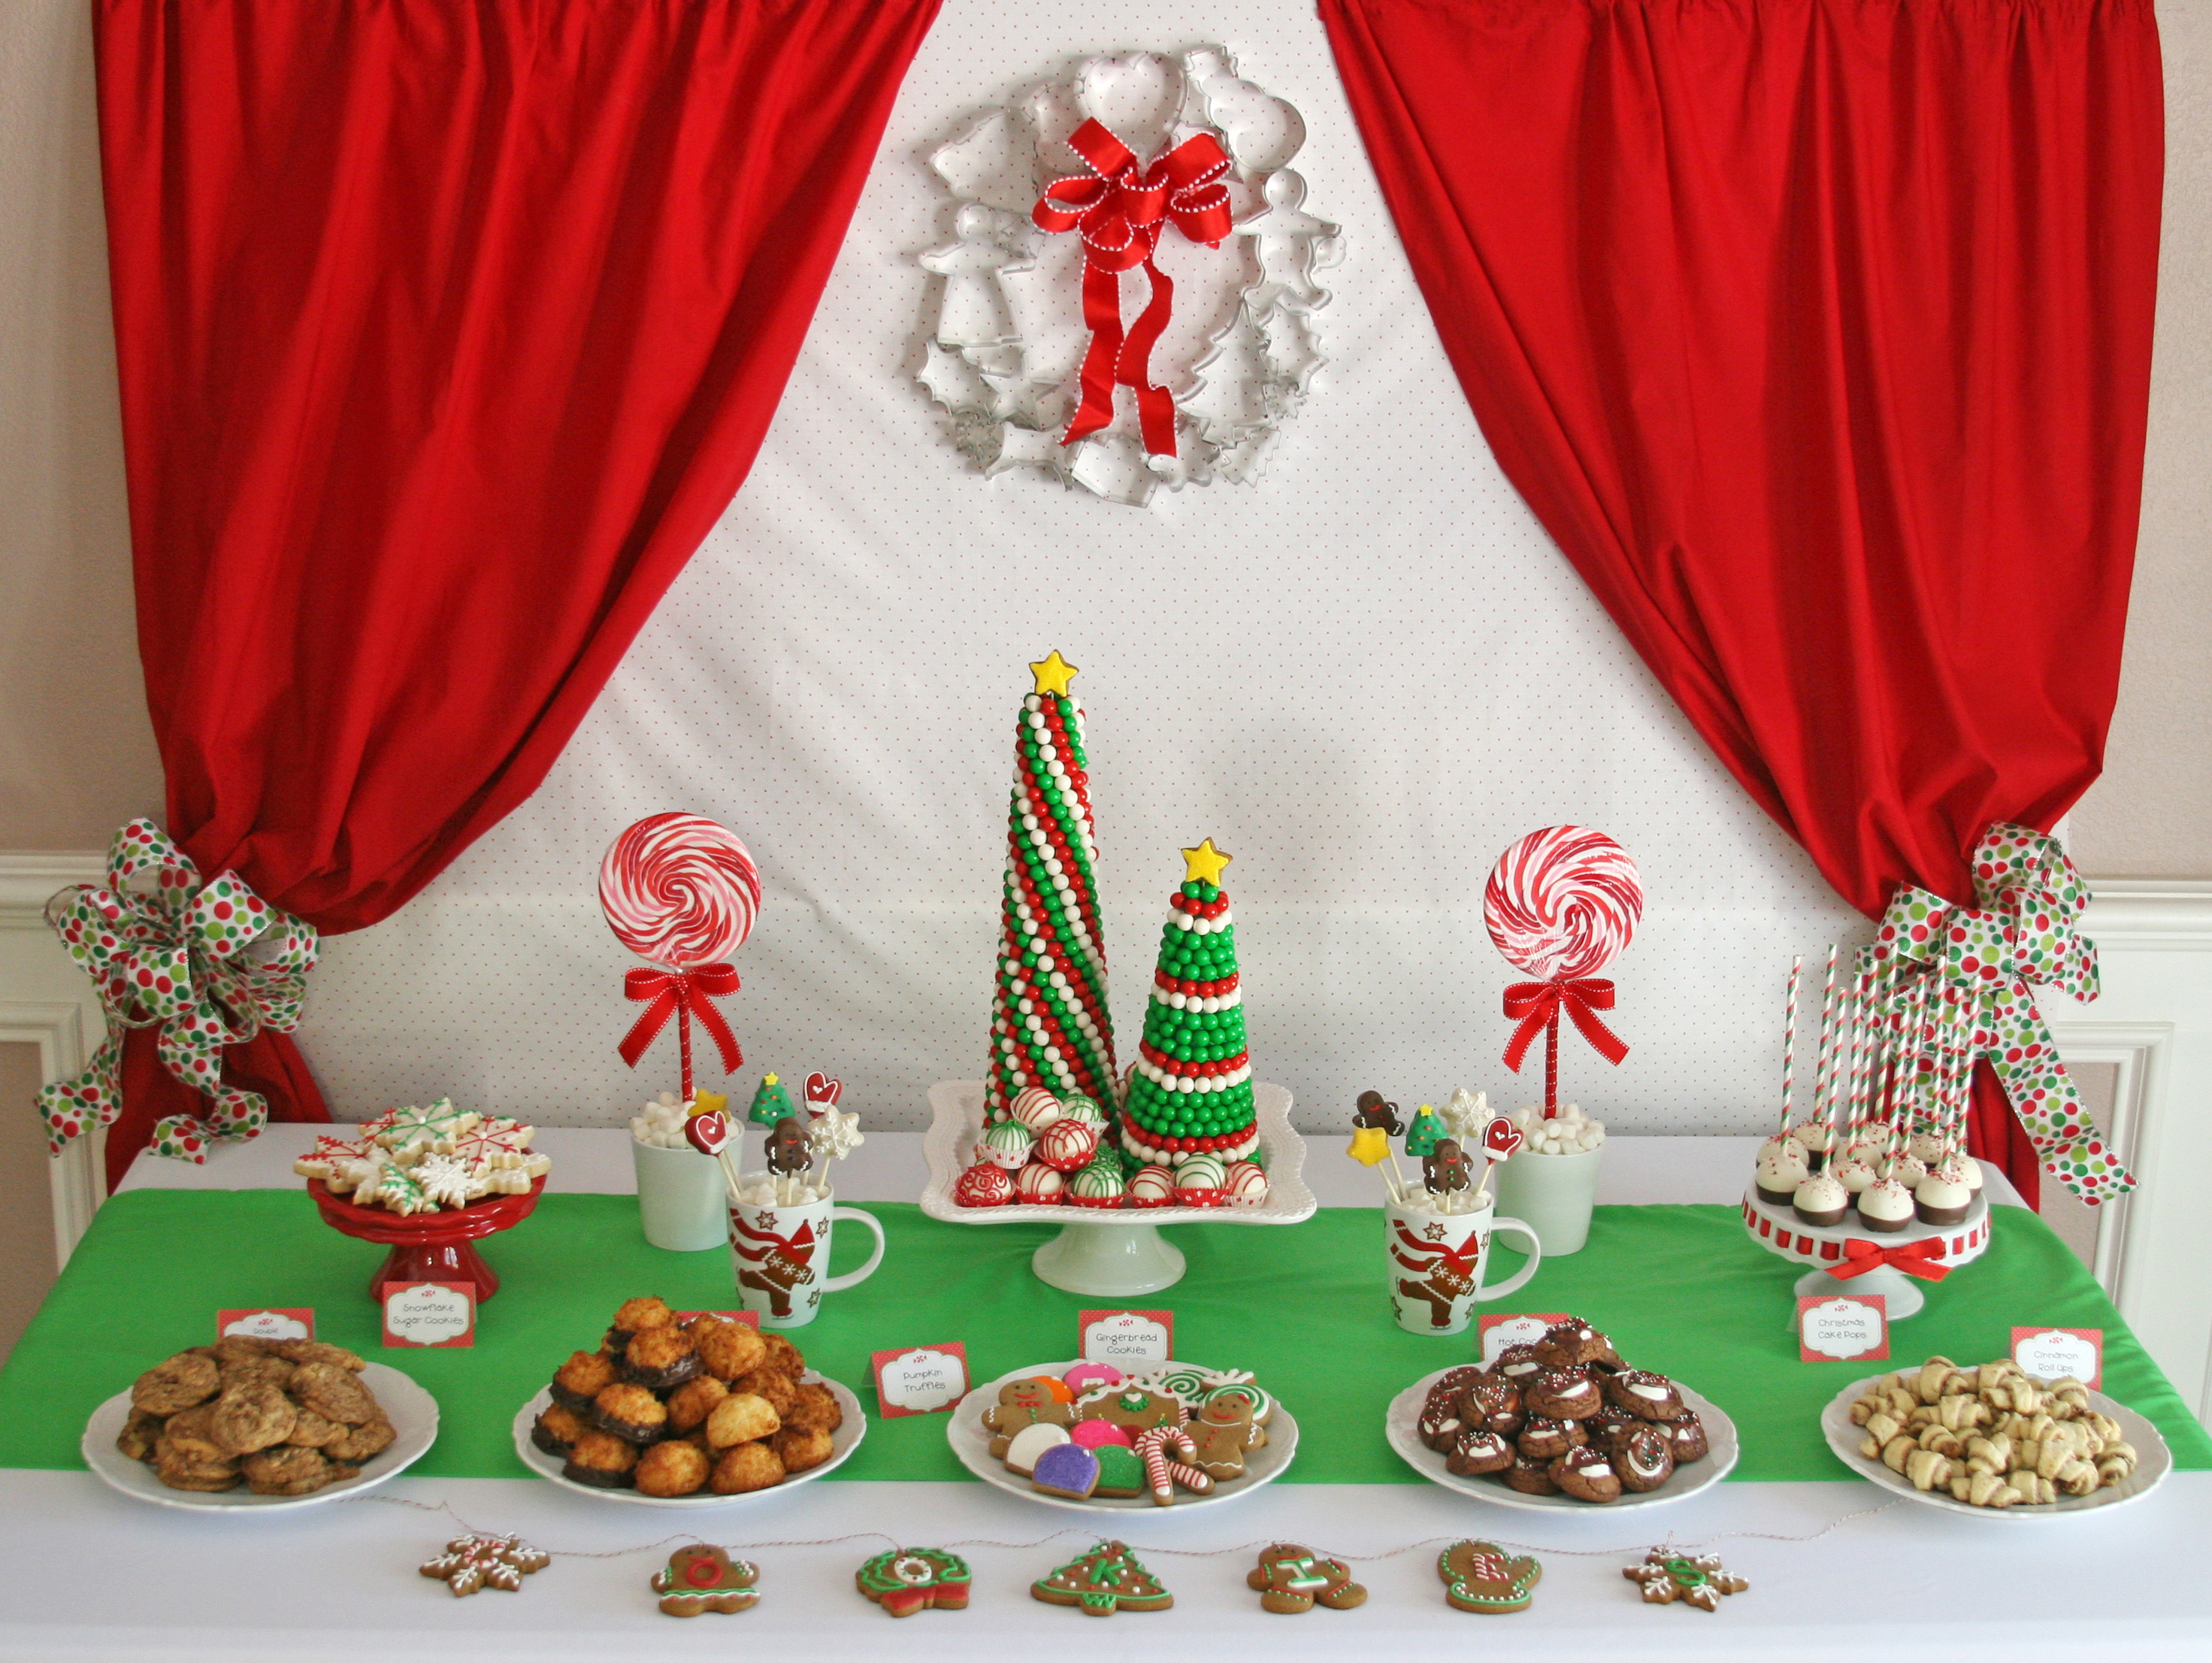 Christmas dessert table decoration ideas - Img_3852e Several Christmas